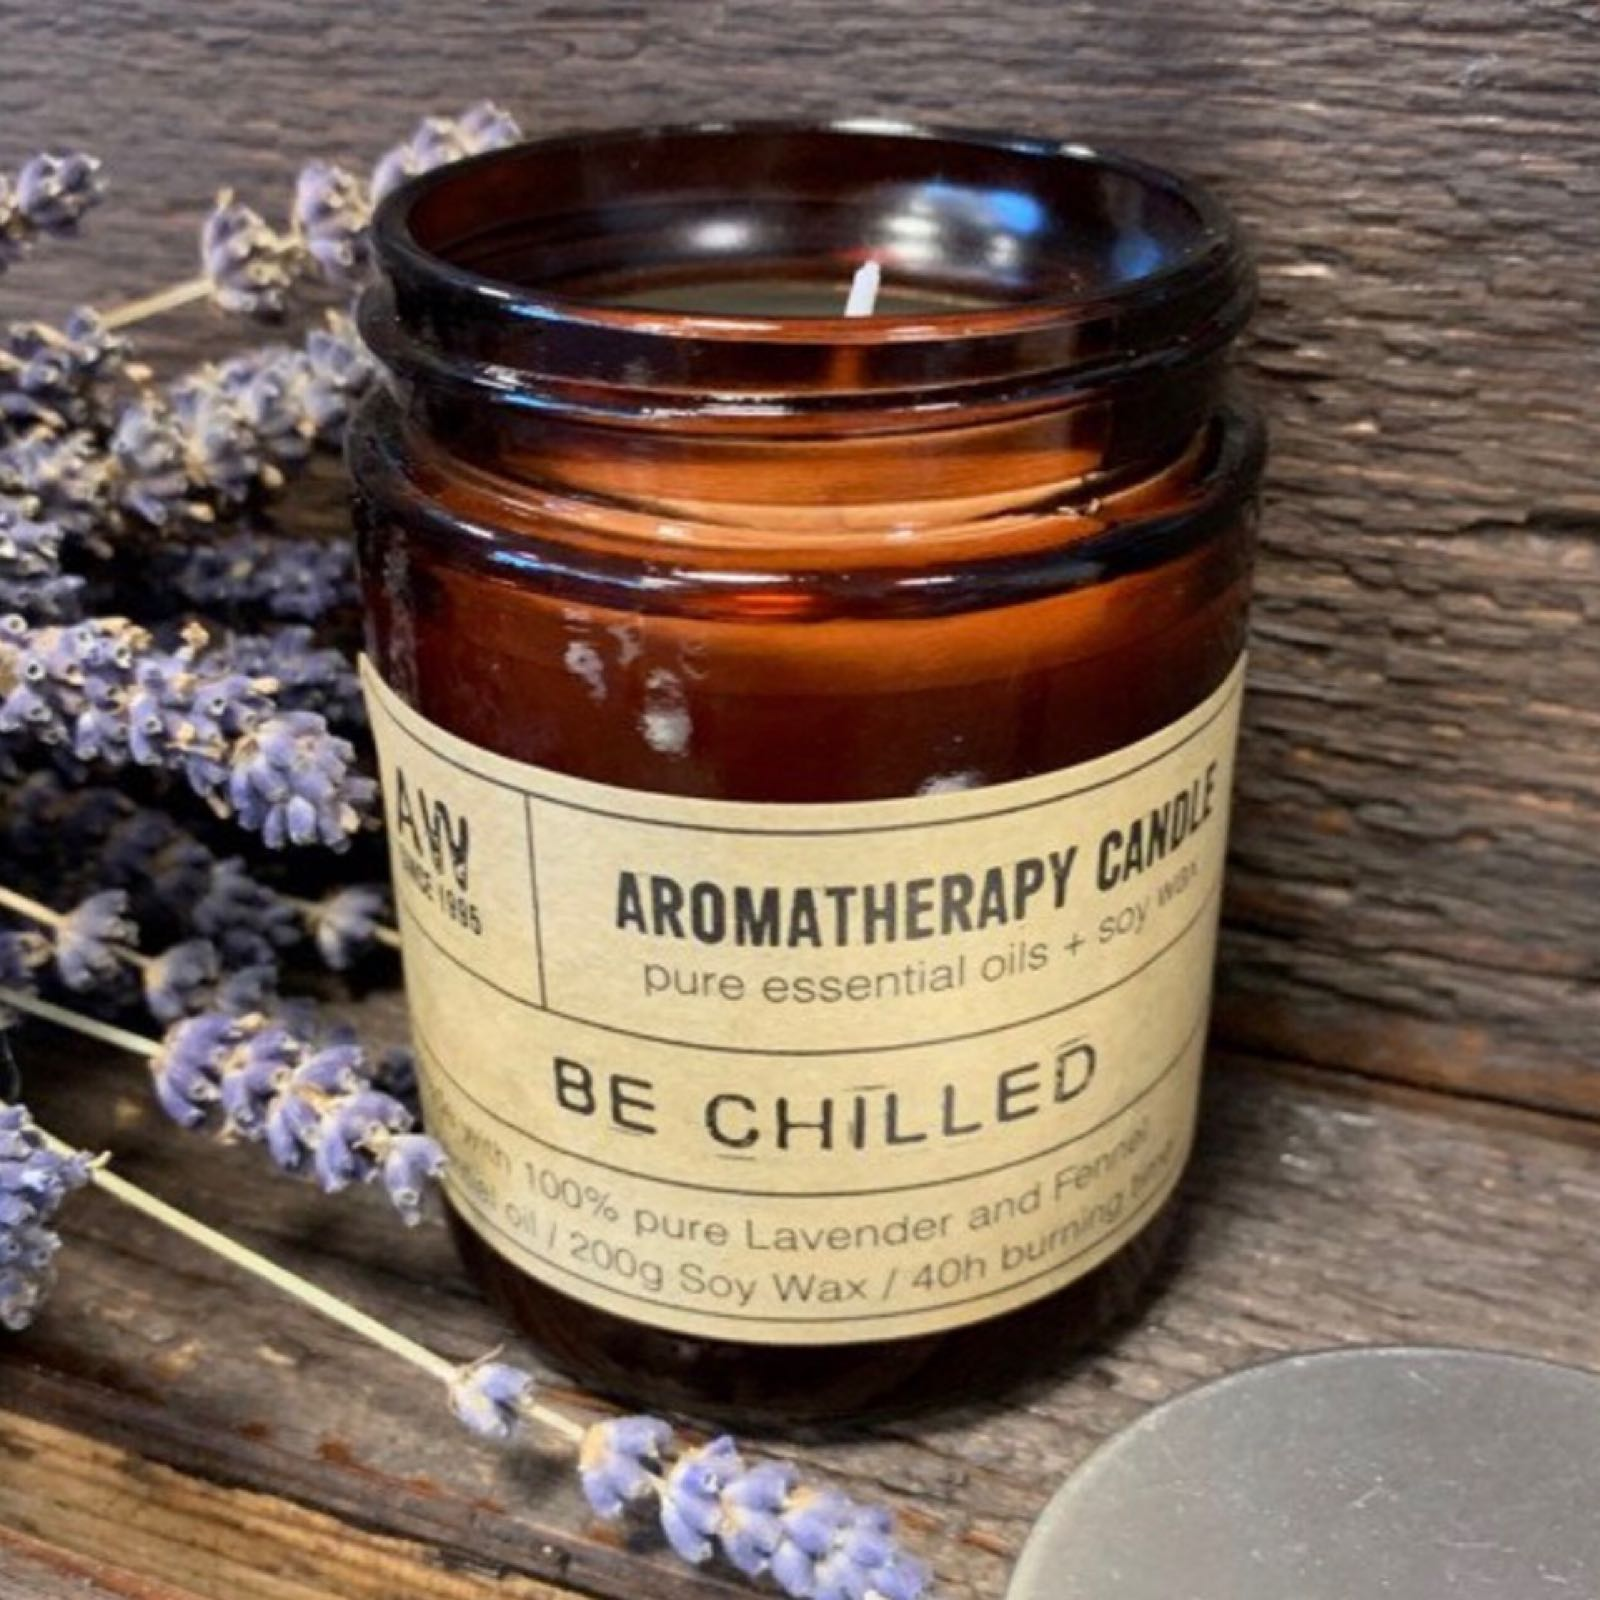 'Be Chilled' Aromatherapy Candle